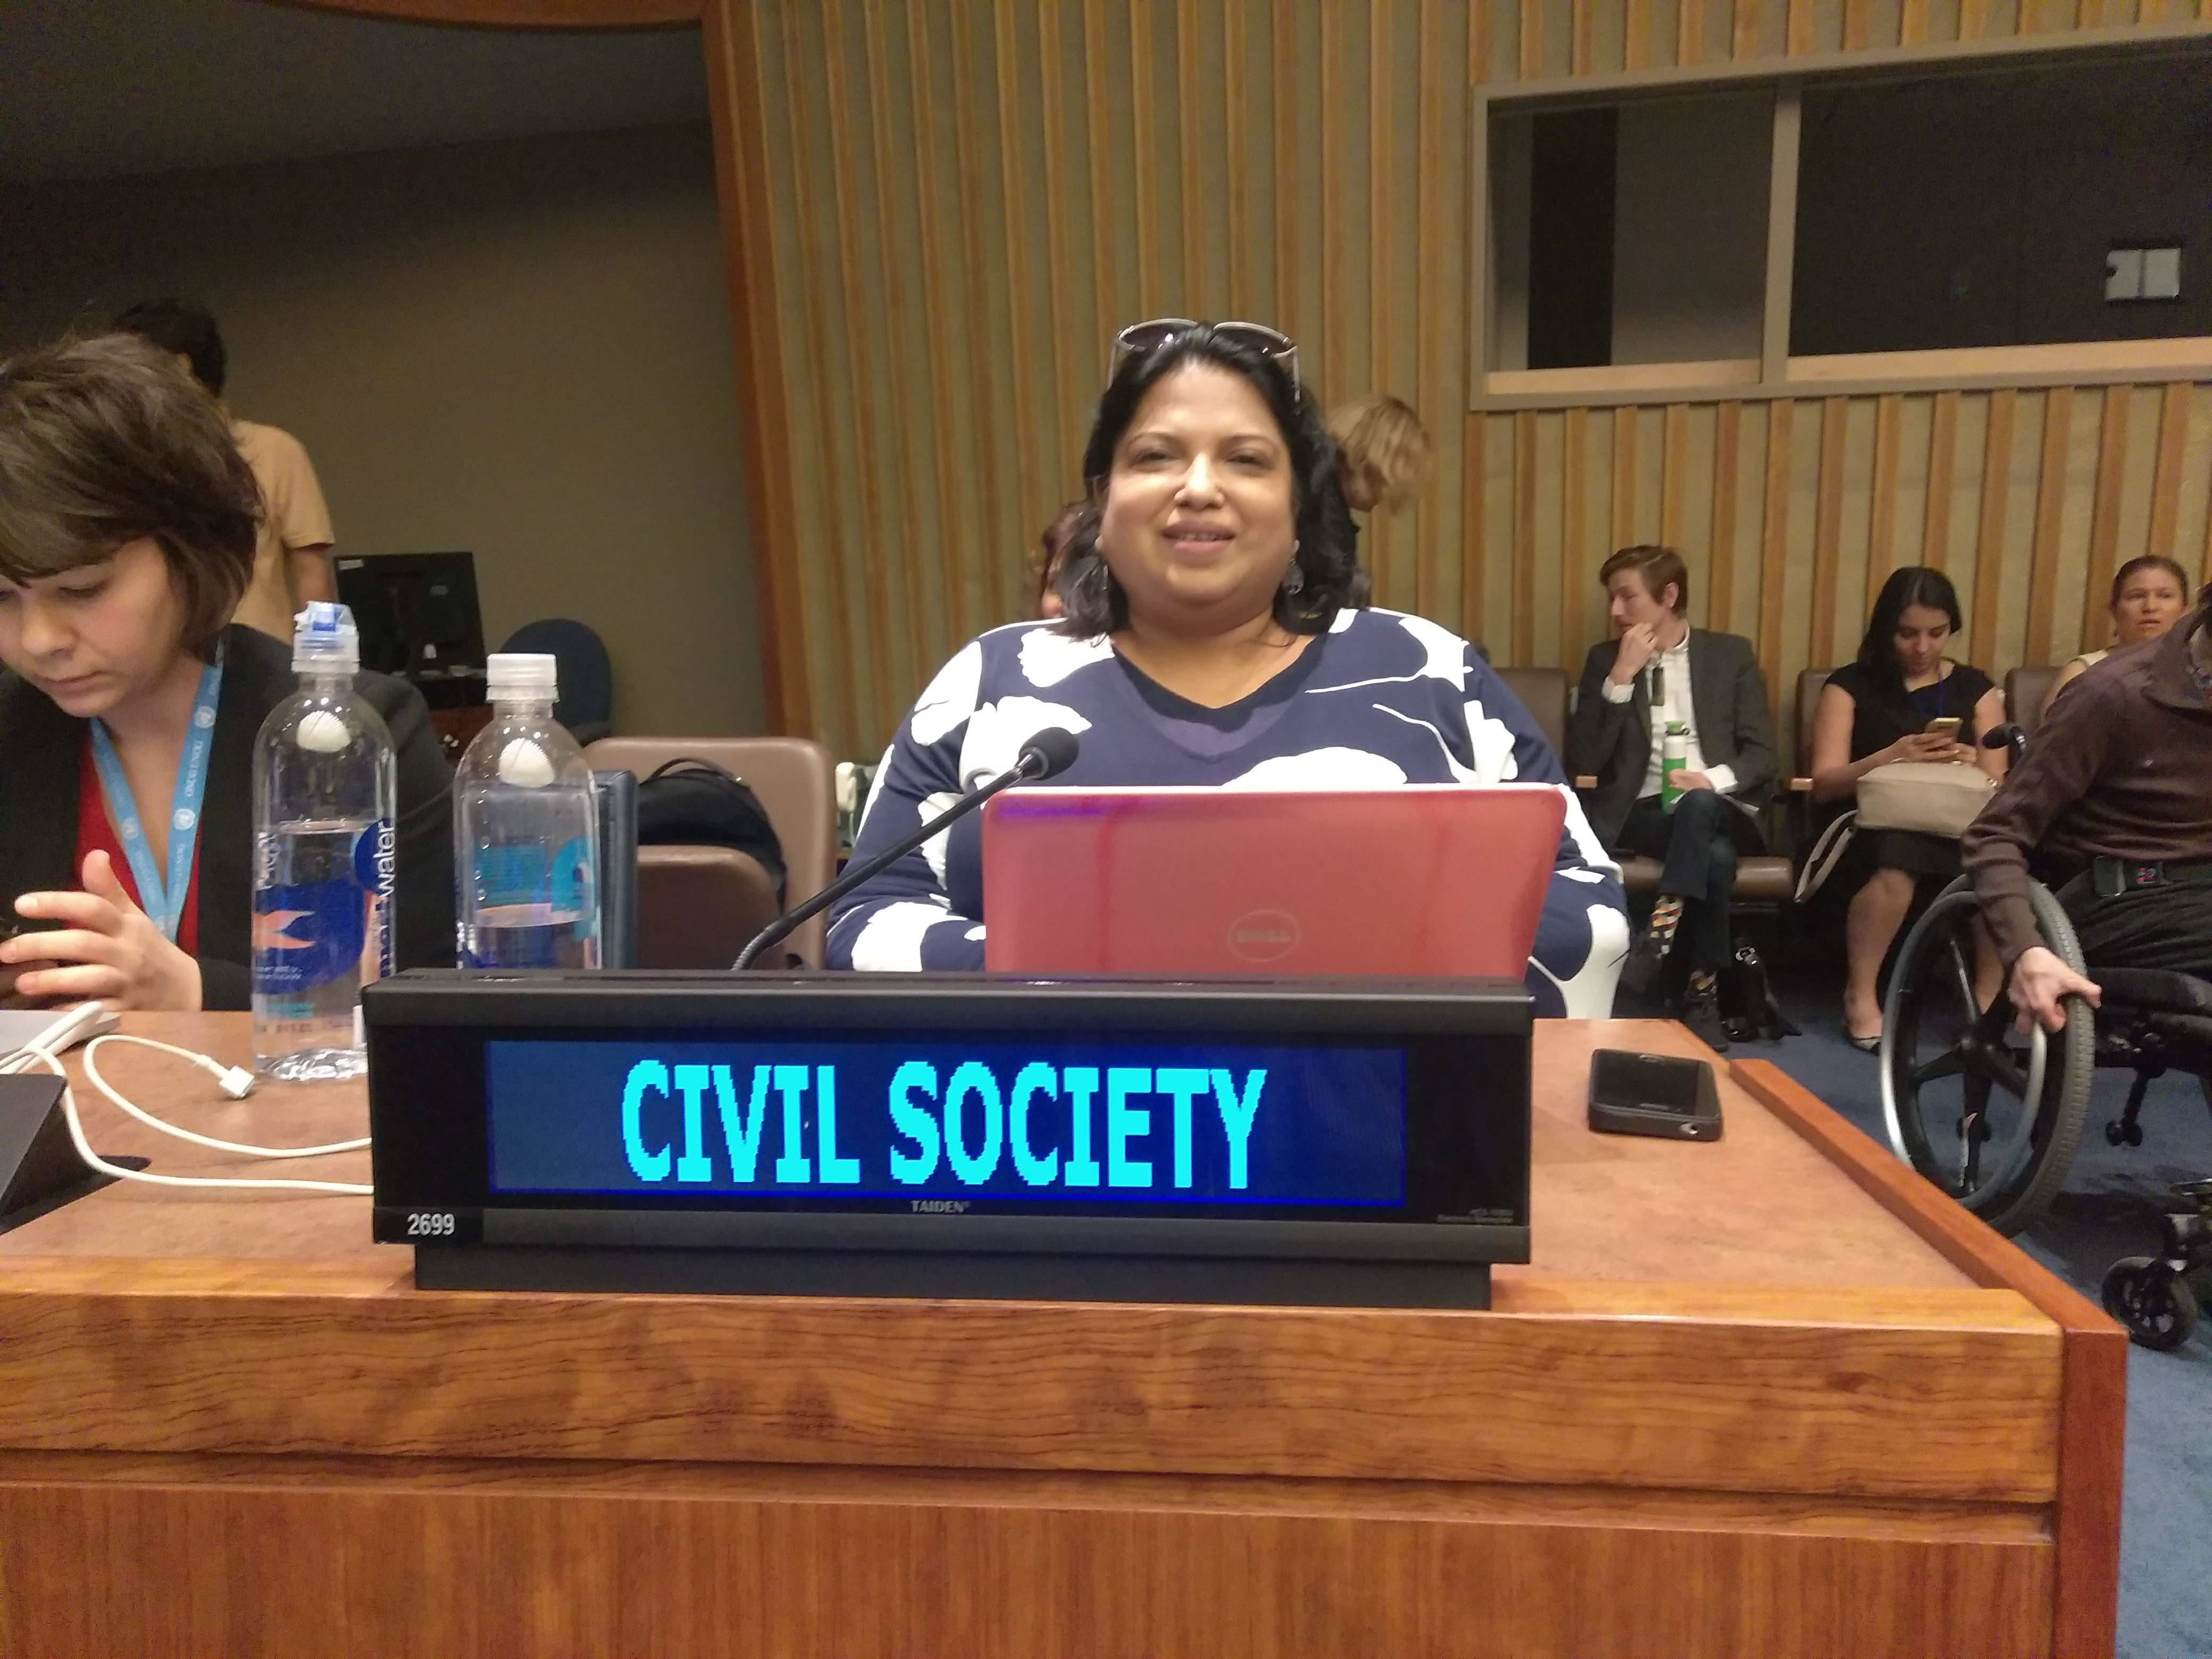 Photo of GAATES Board Member Anjlee Agarwal smiling and sitting in Conference Room, representing Civil Society